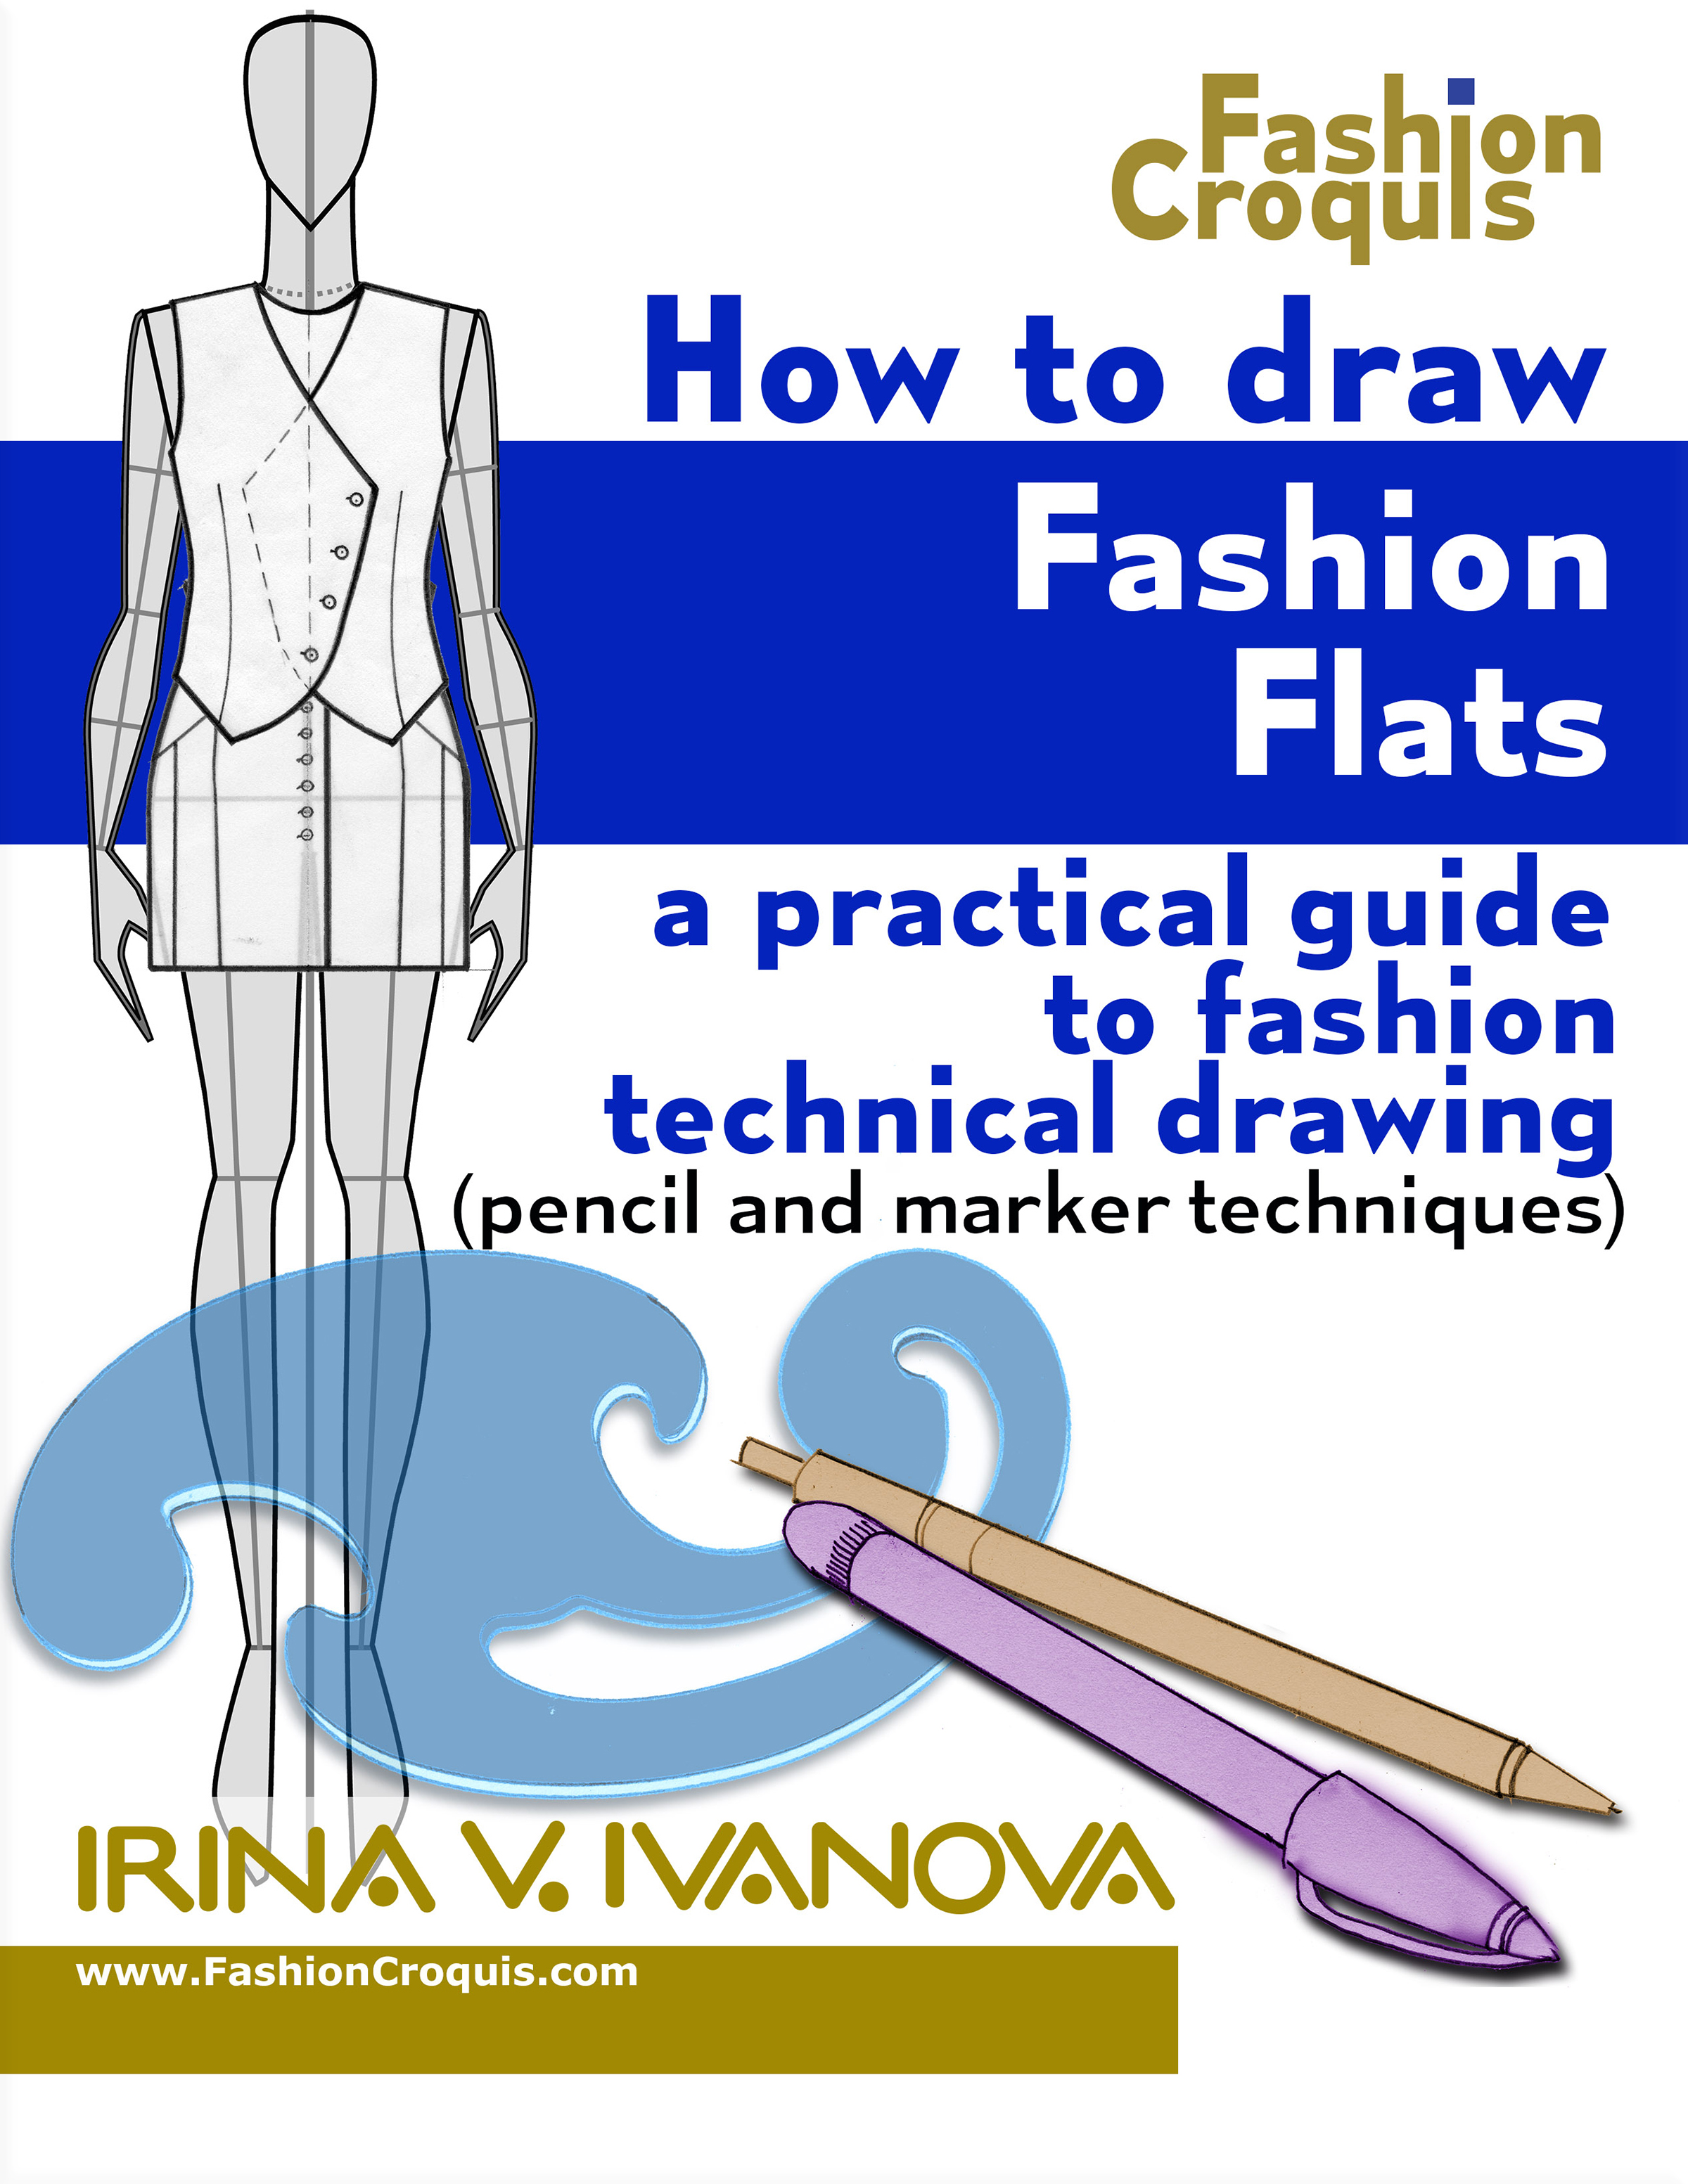 Technical drawing and Fashion flats sketches for clothing